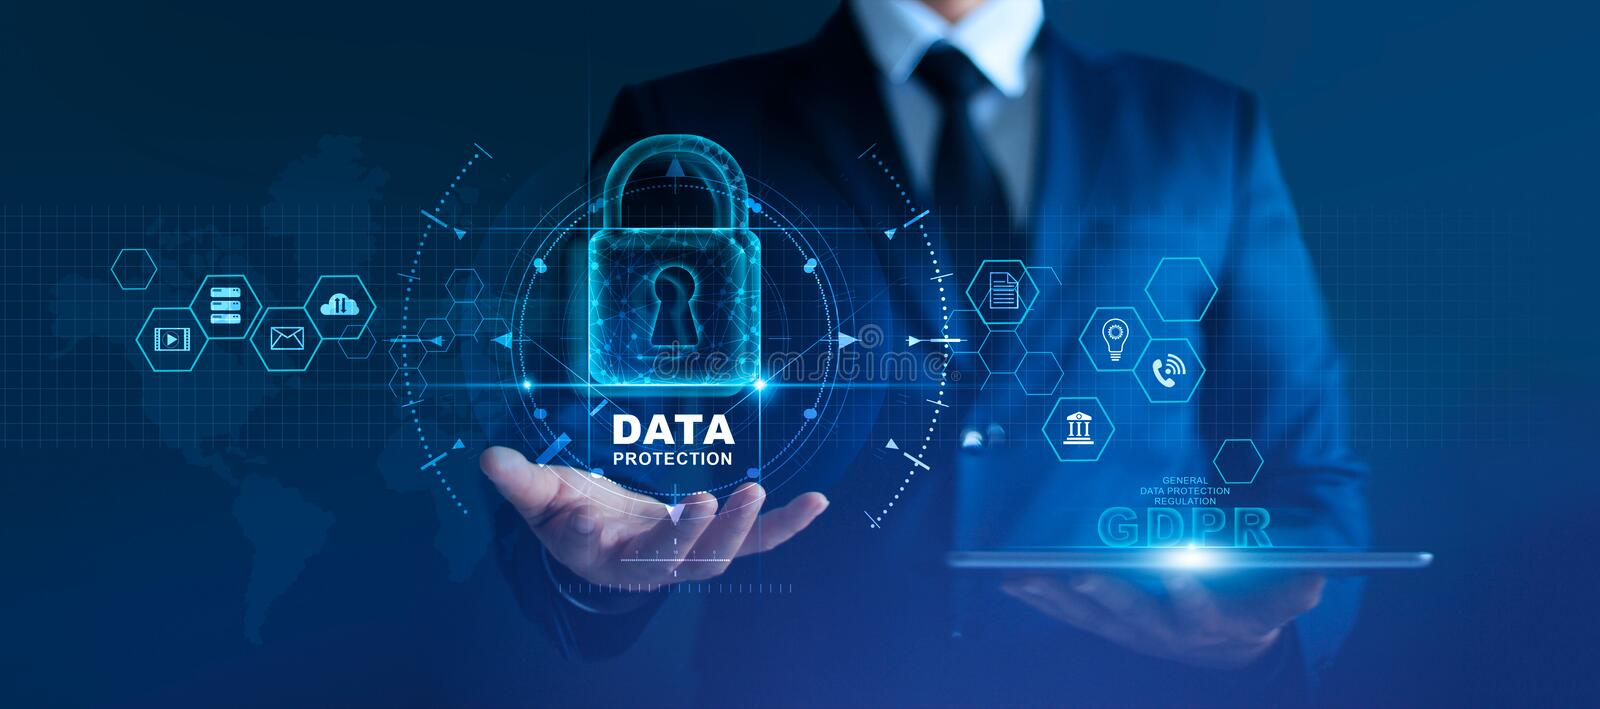 Data protection privacy concept. GDPR. EU. Cyber security network. Business man protecting data stock image